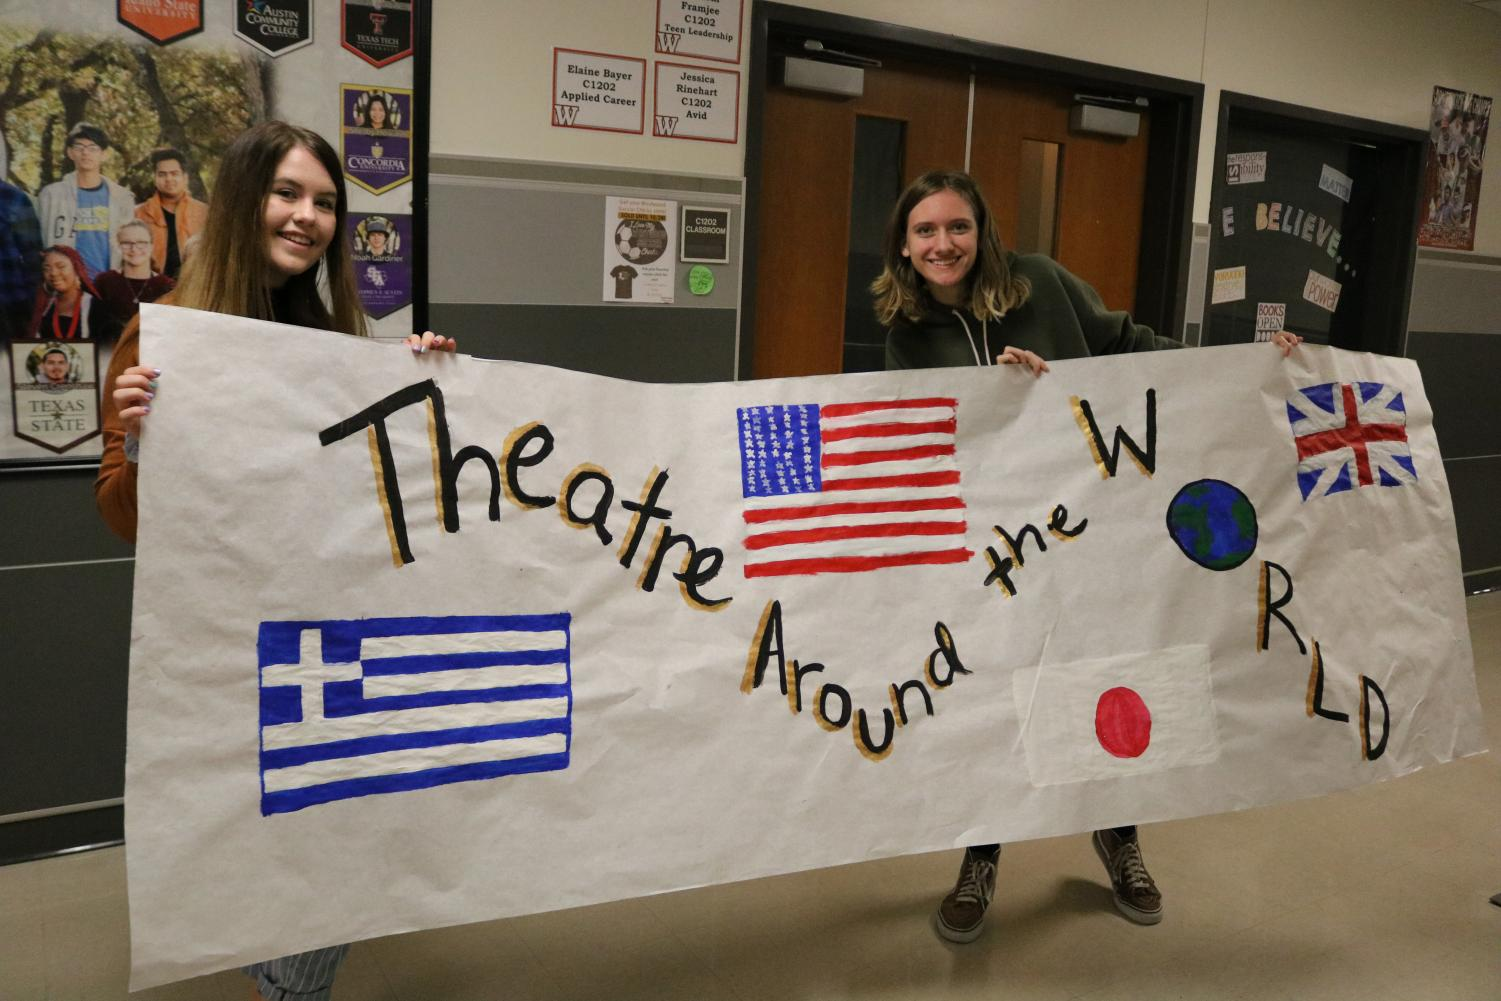 Drama+club+members+Eva+De+Guelle+%2722+and+Sophie+Clift+%2722+proudly+hold+their+poster+representing+theatre+in+all+the+countries.+They+want+to+highlight+the+different+forms+of+practicing+theatre+in+various+places+across+the+world.